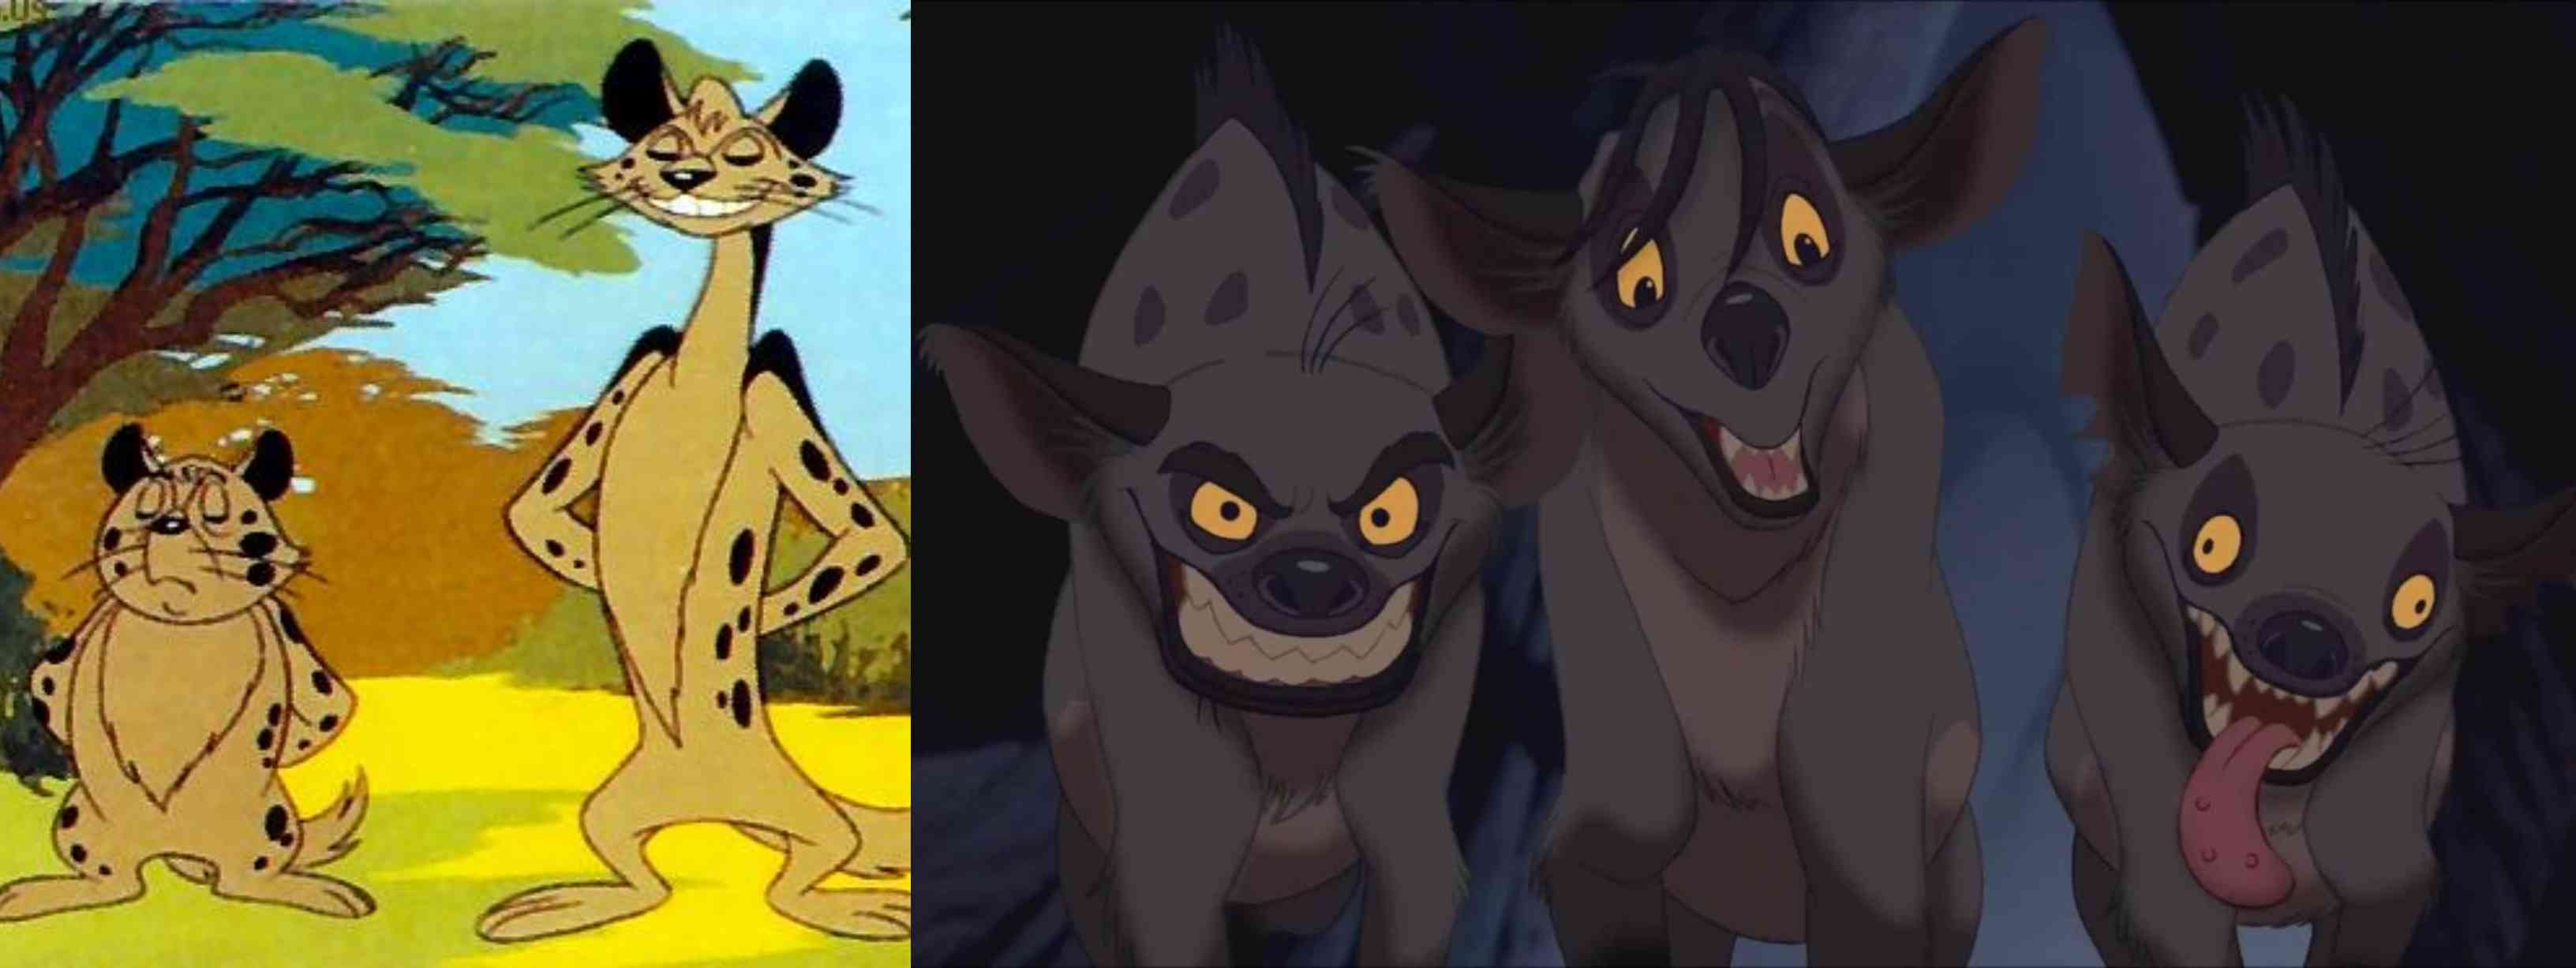 The hyenas of Kimba, The White Lion (left) and The Lion King. Courtesy Tezuka Productions/Disney.